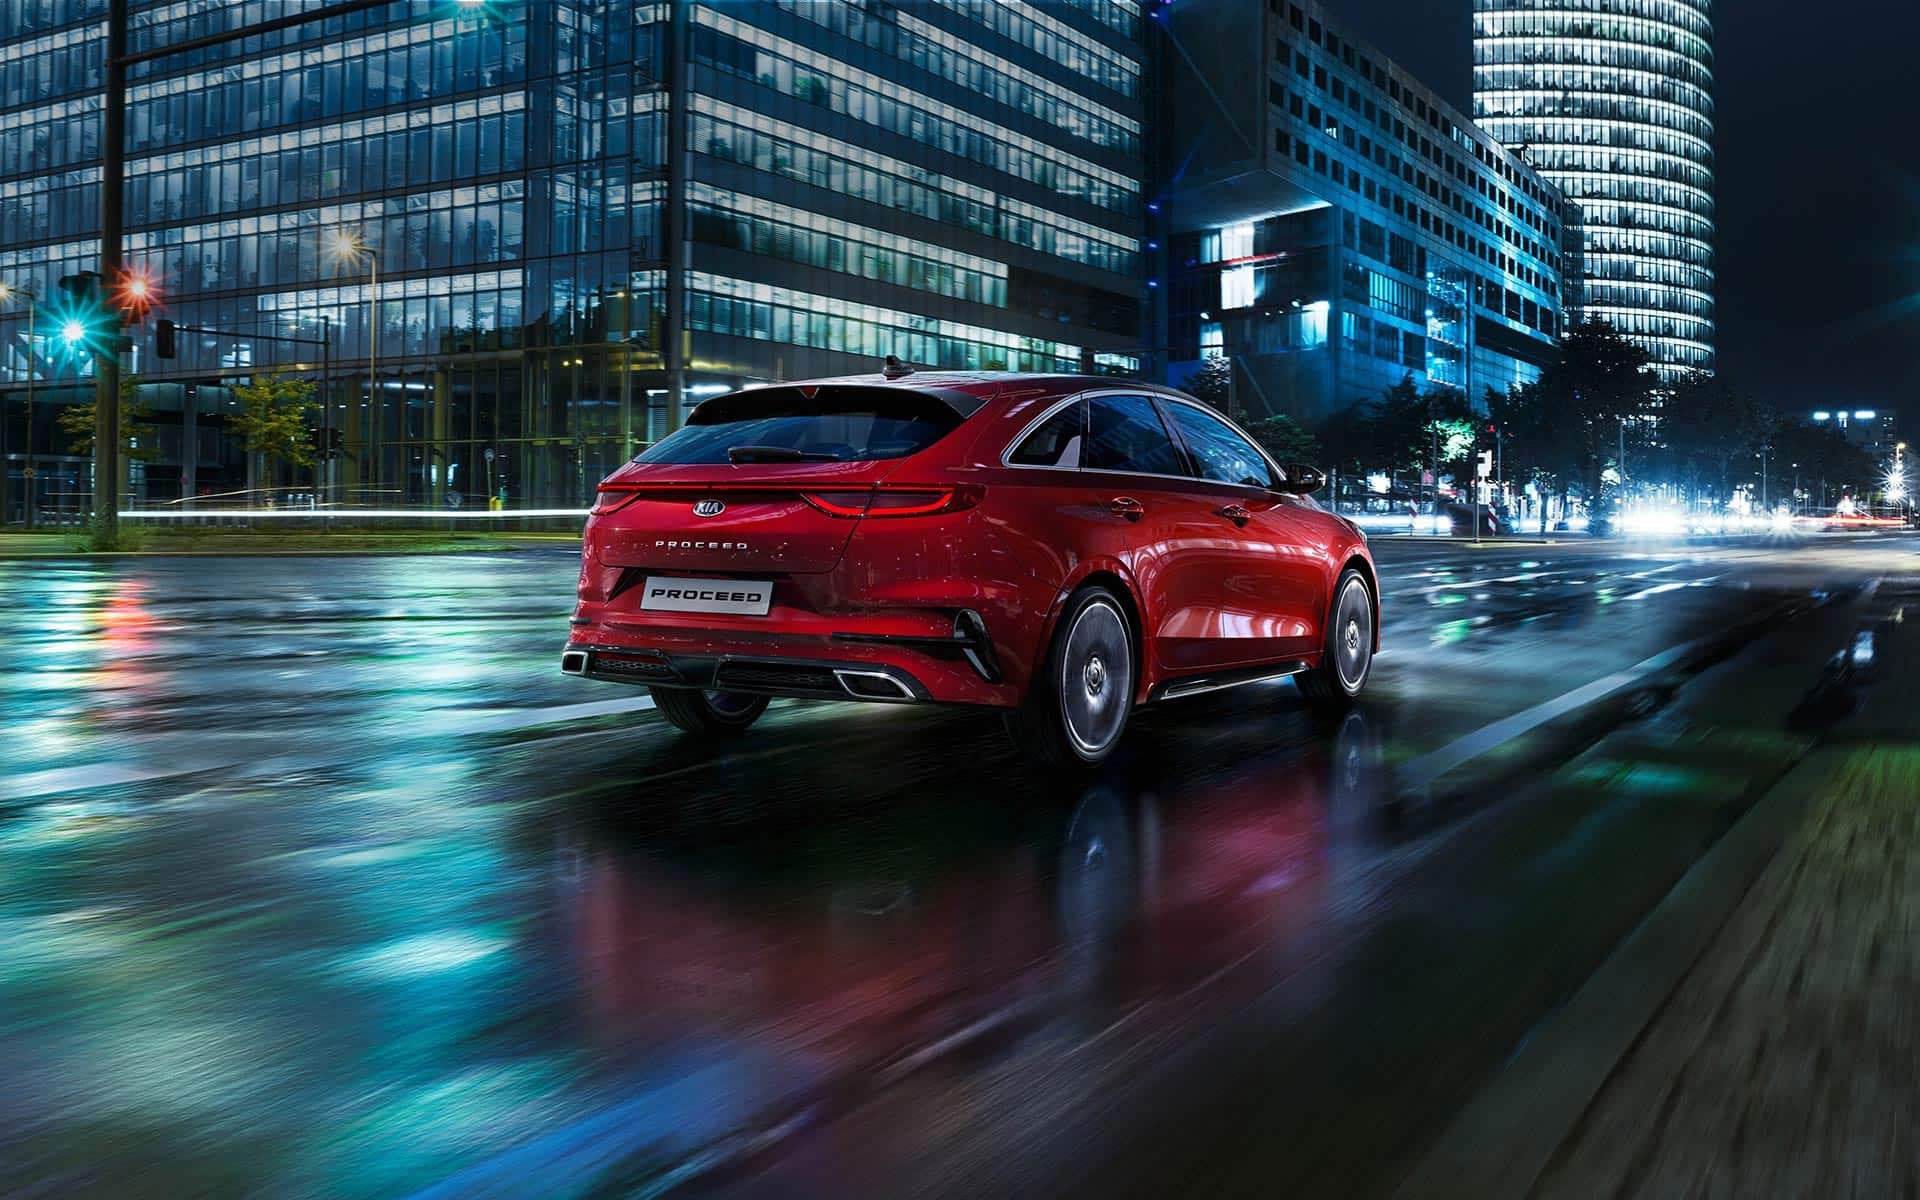 Kia ProCeed night-time driving rear view